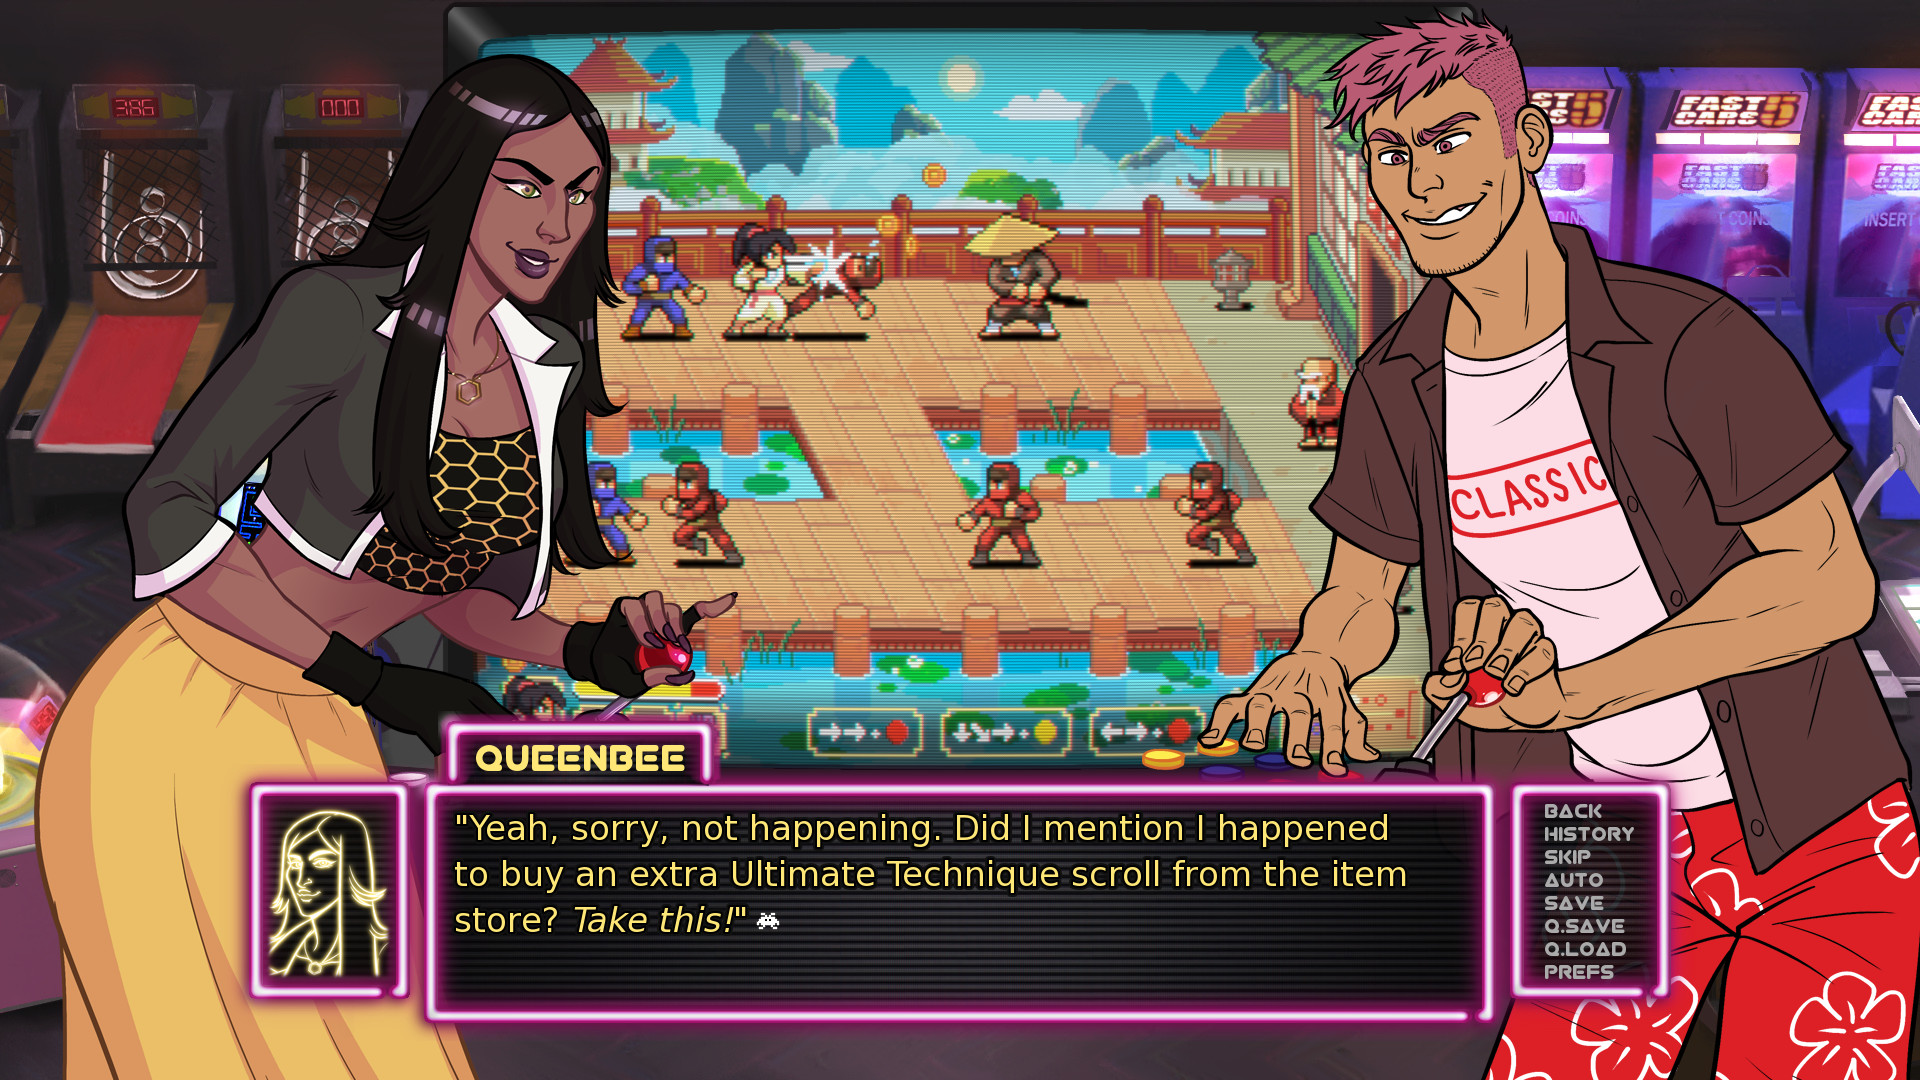 flirting games at the beach game room images free